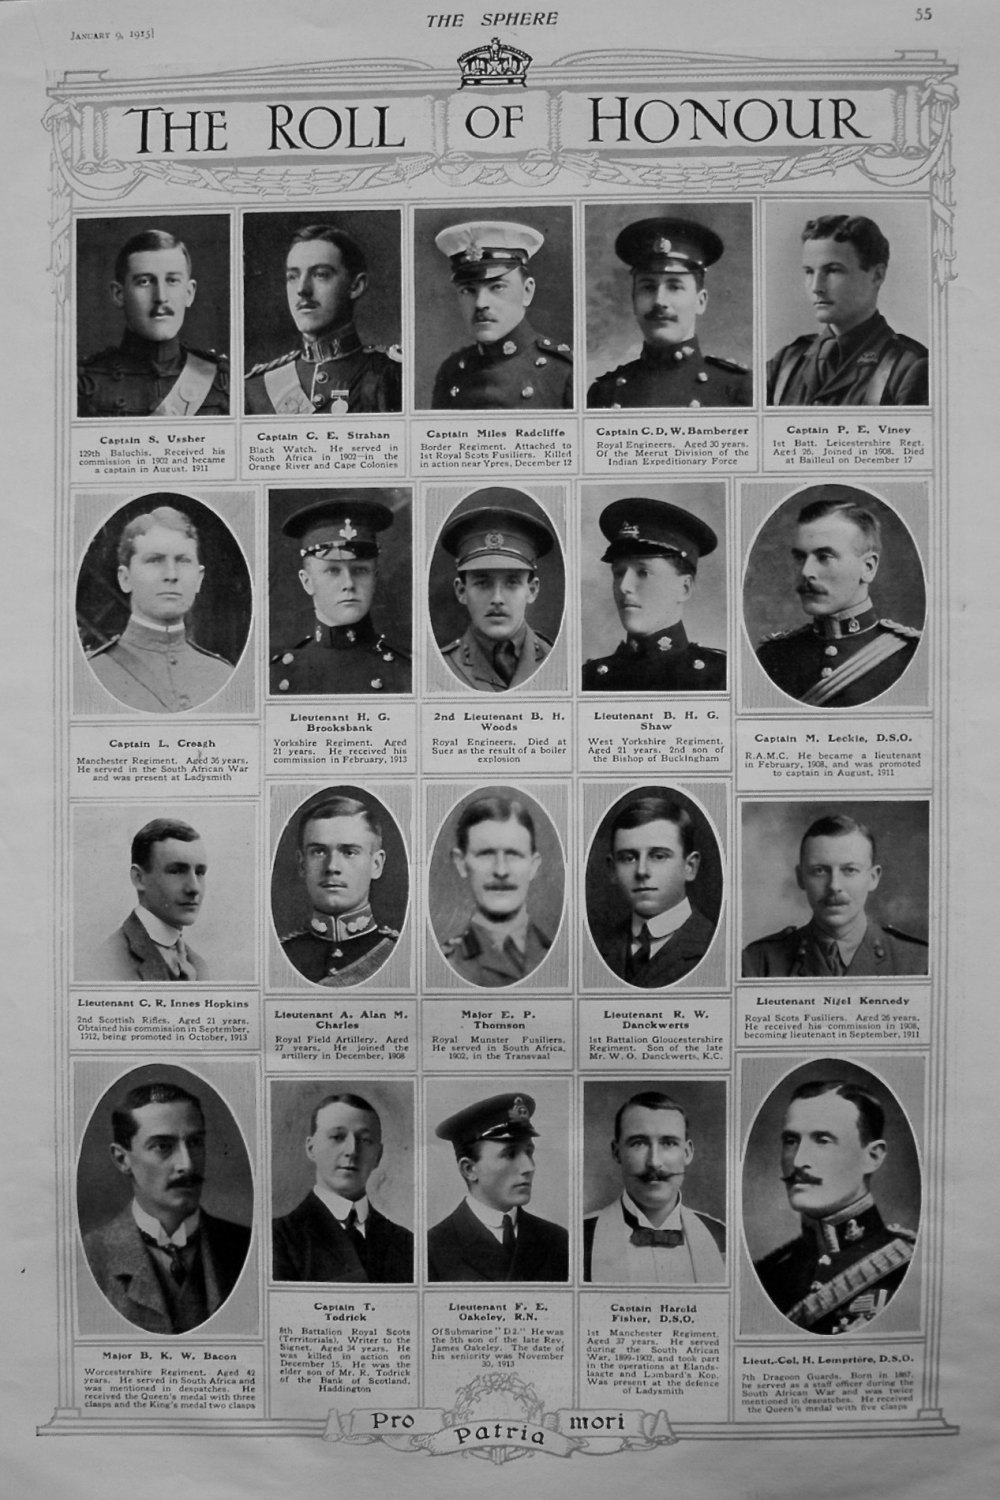 The Roll of Honour. January 9th, 1915.